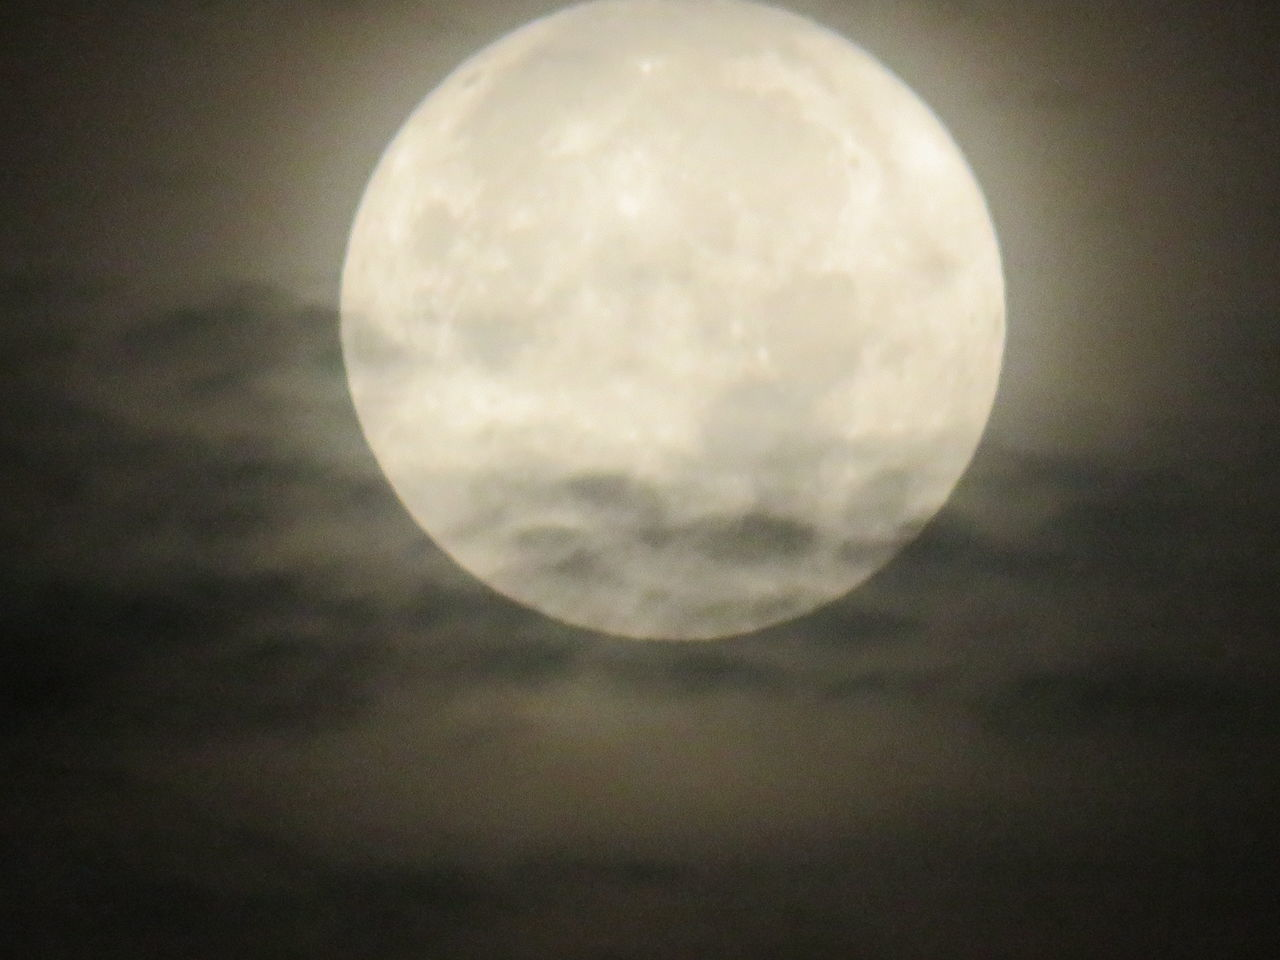 moon, night, astronomy, moon surface, planetary moon, beauty in nature, nature, full moon, circle, scenics, majestic, low angle view, tranquility, tranquil scene, sky, outdoors, space exploration, no people, discovery, half moon, sky only, space, close-up